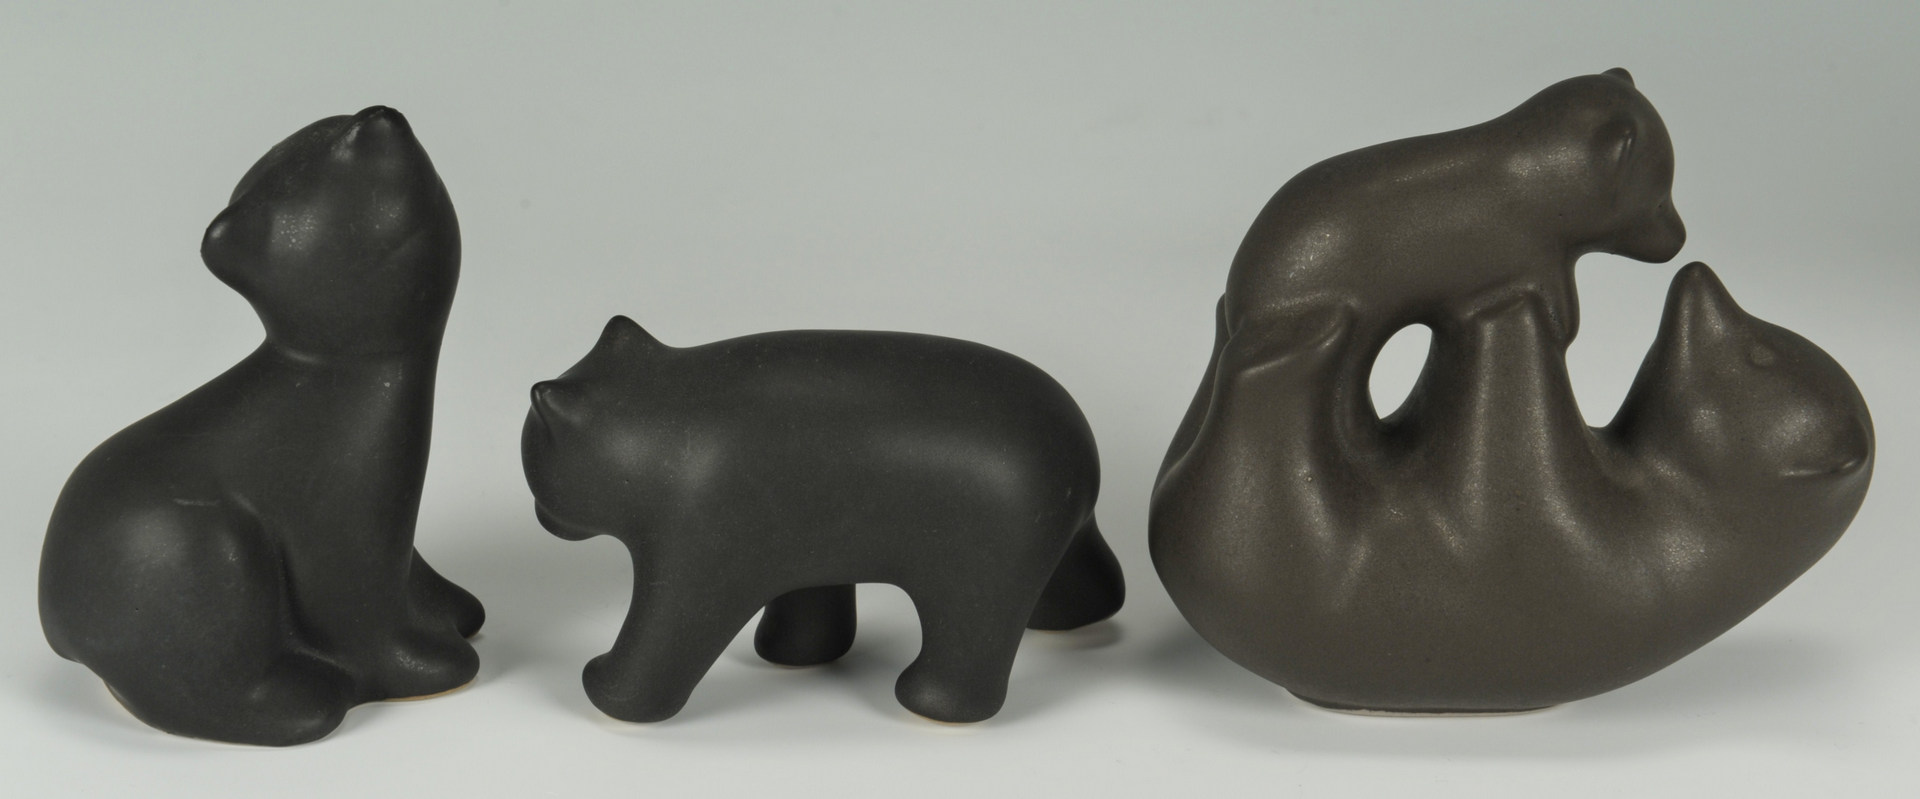 Lot 308: Grouping Pigeon Forge, TN Pottery Bears, 7 items